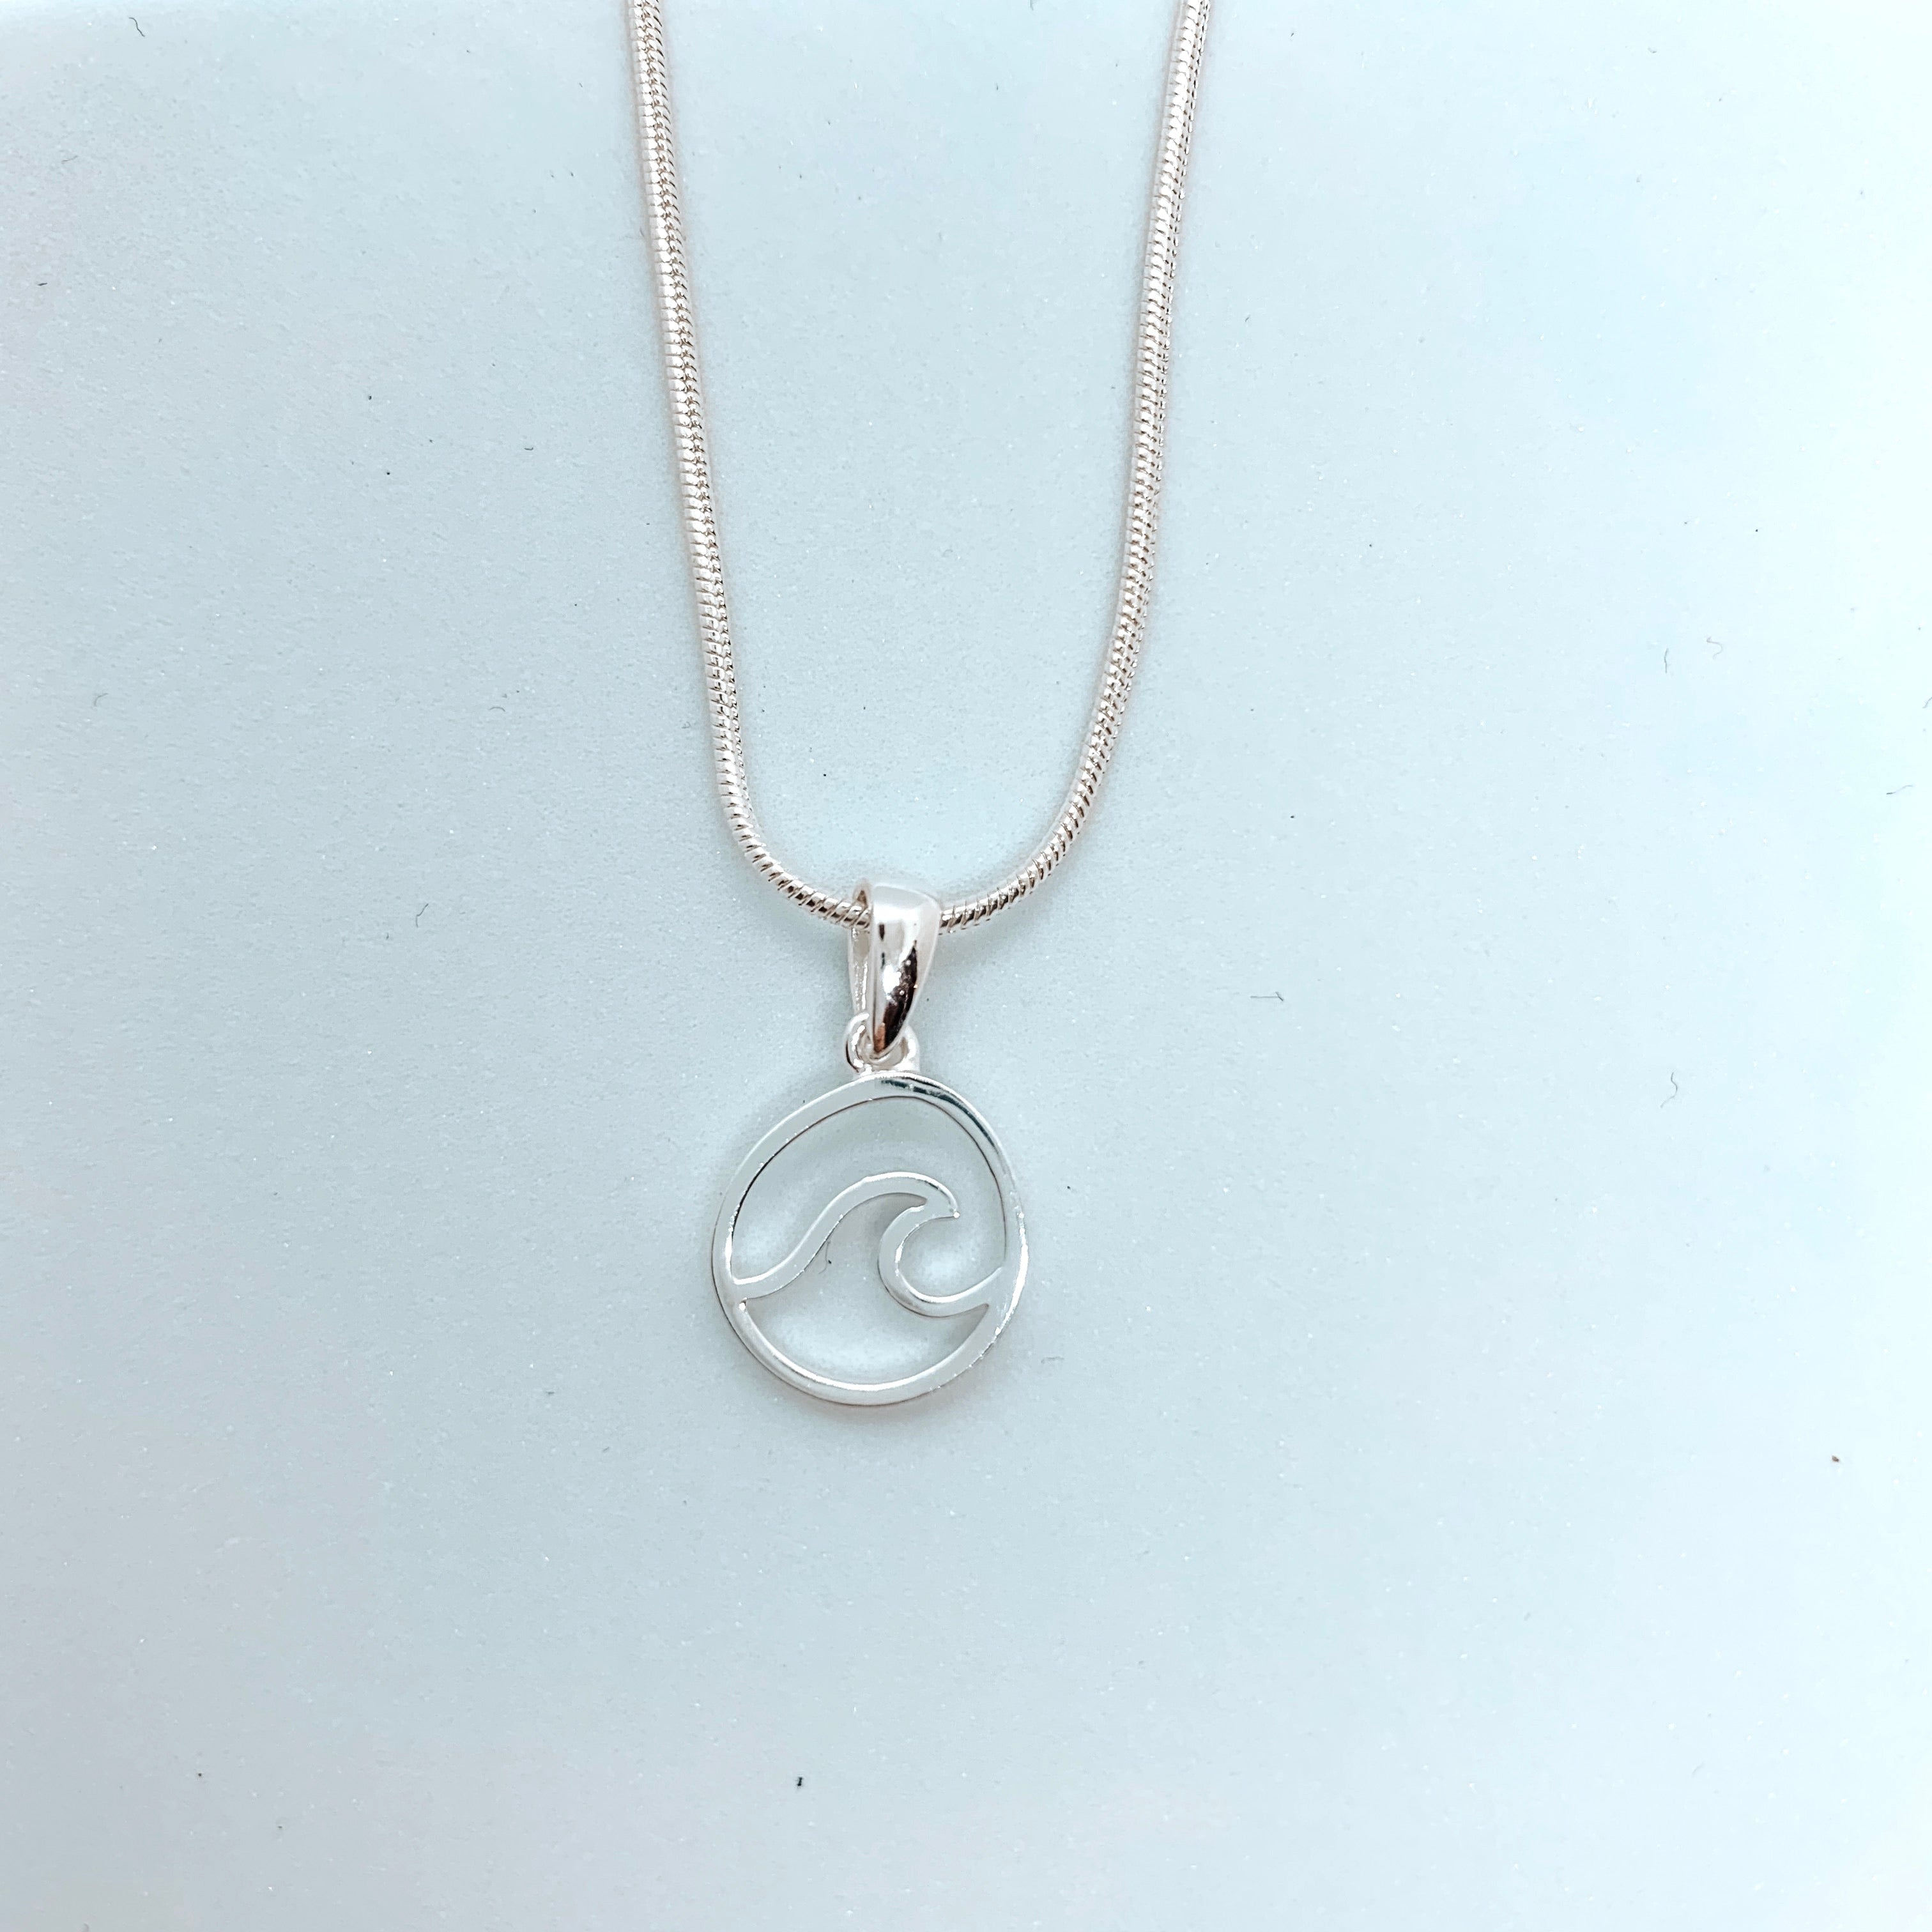 Ocean swell necklace